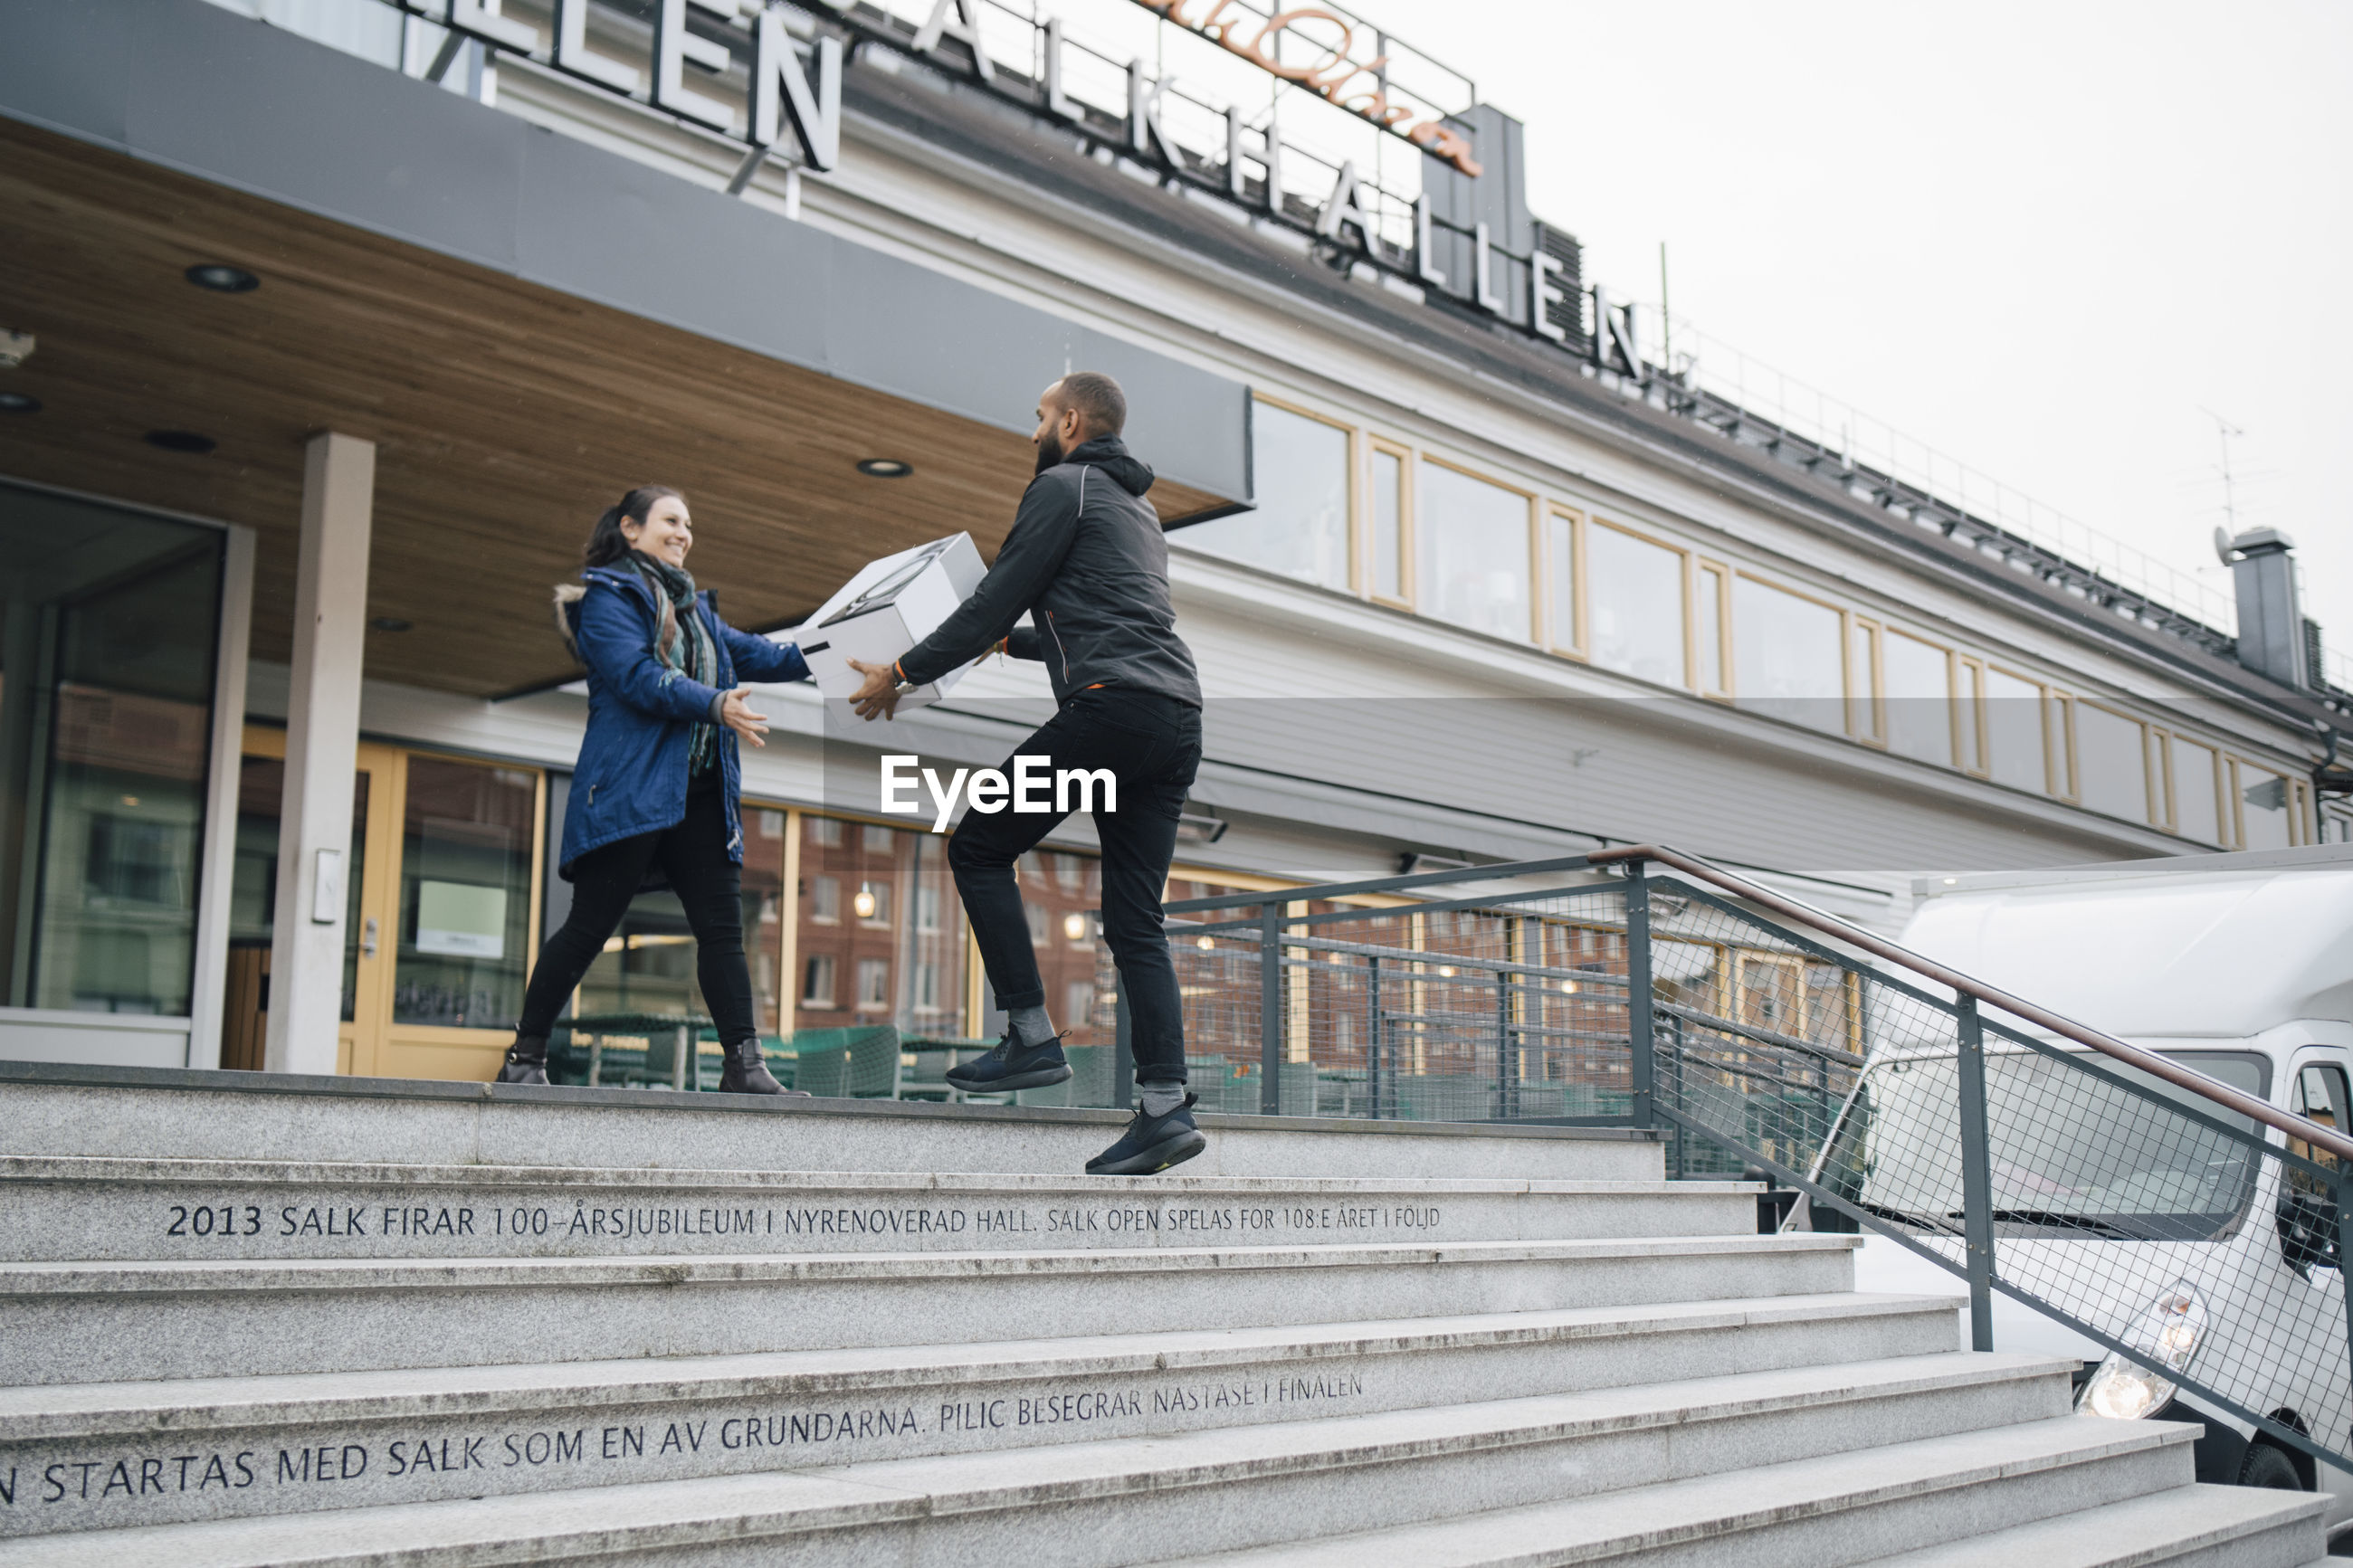 LOW ANGLE VIEW OF PEOPLE WALKING ON STAIRCASE AGAINST BUILDING